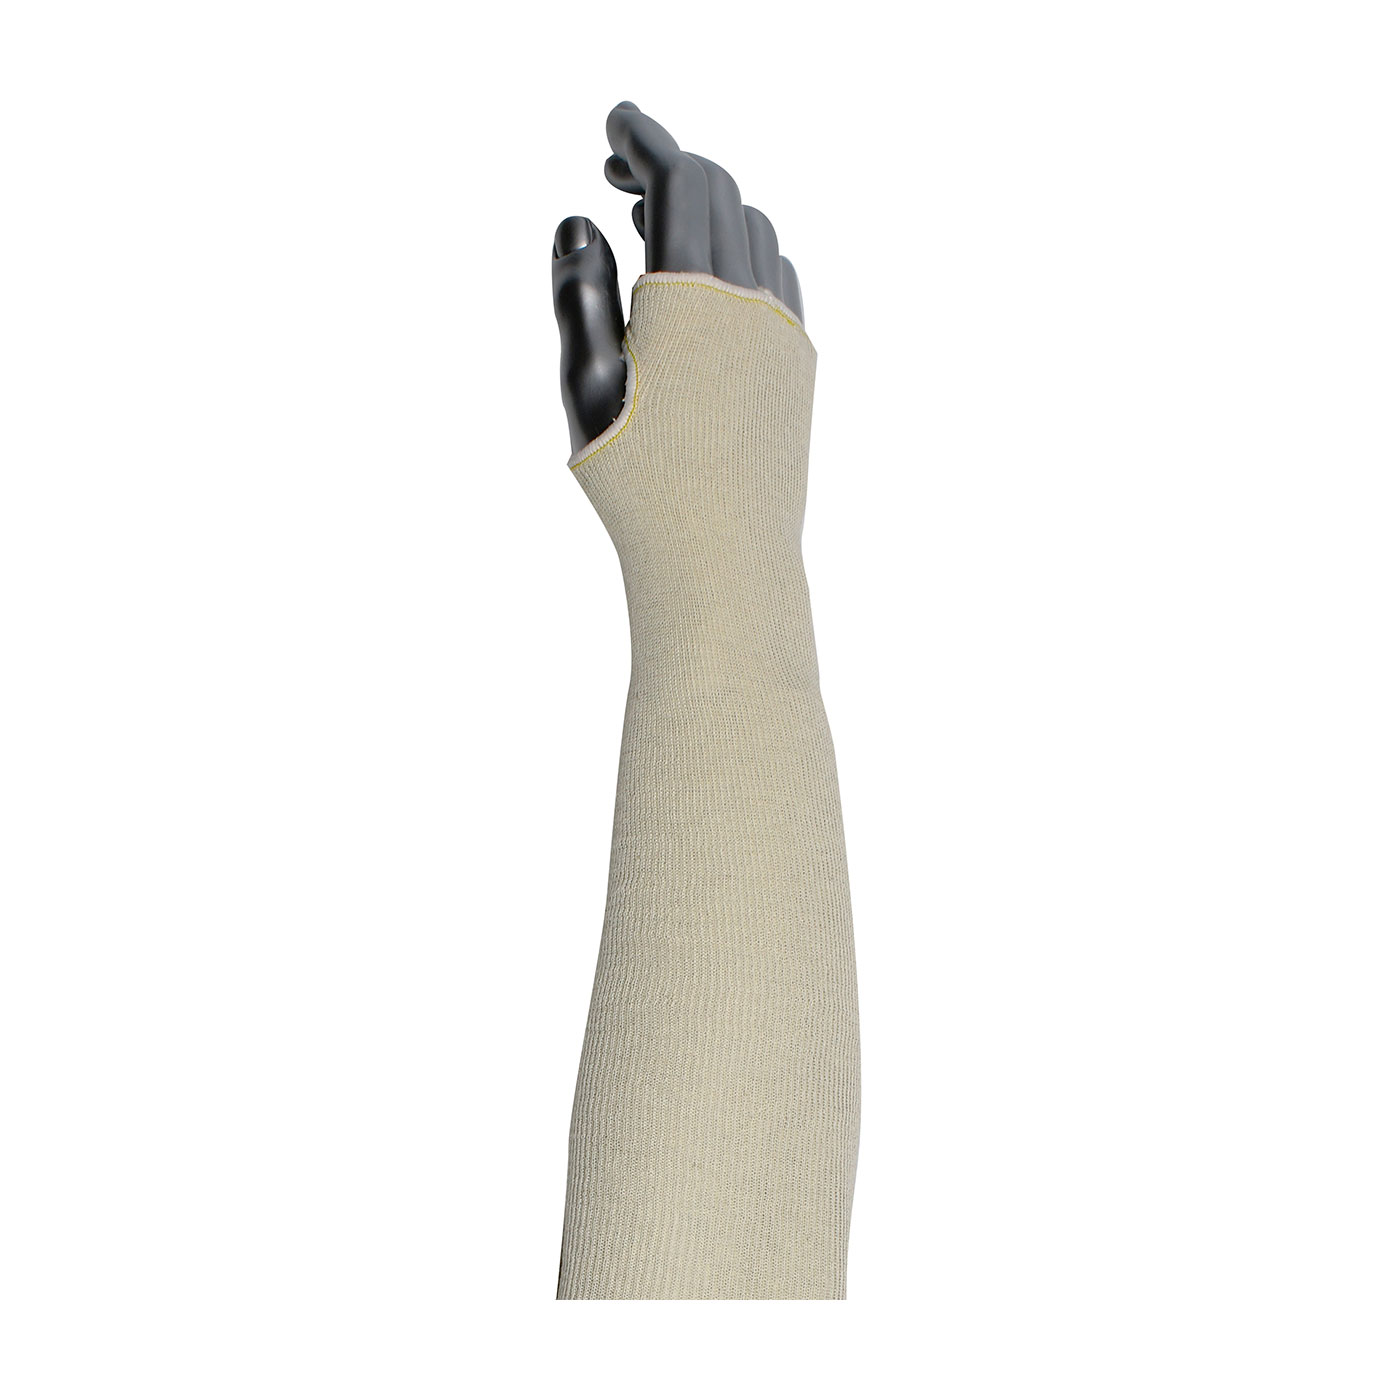 2-Ply Cotton Sleeve with Thumb Hole, Natural, 14""